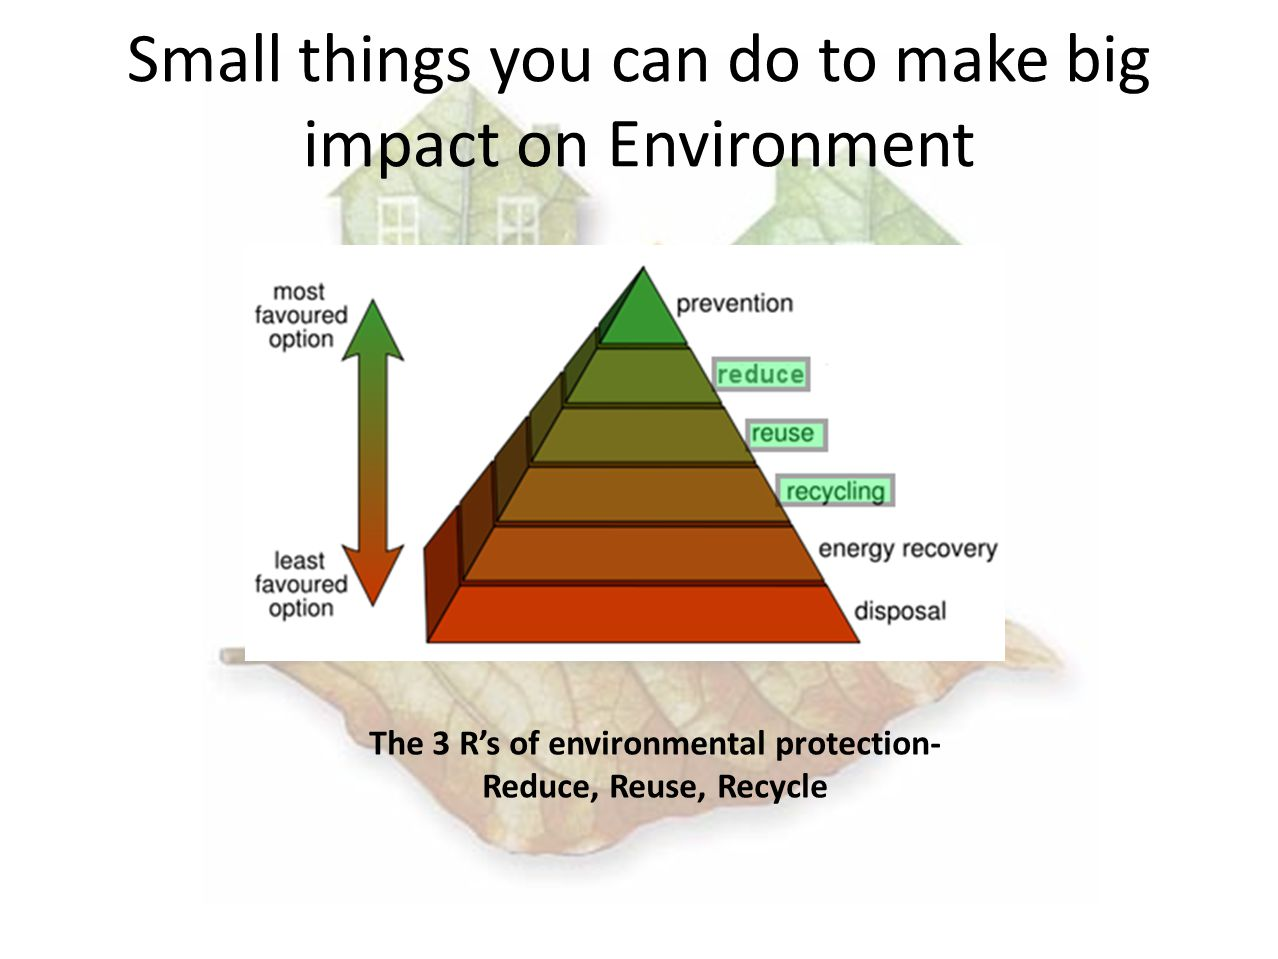 Small things you can do to make big impact on Environment The 3 Rs of environmental protection- Reduce, Reuse, Recycle